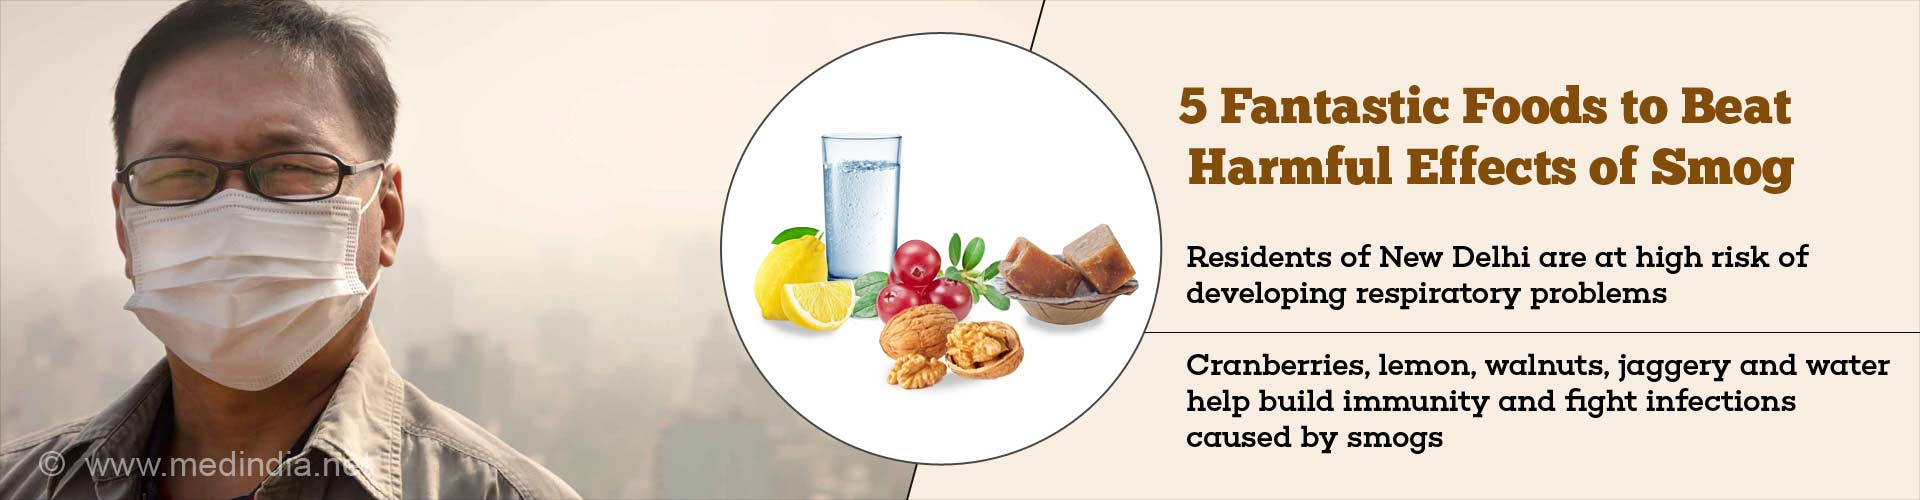 Five Foods That Help Beat Harmful Effects of Smog